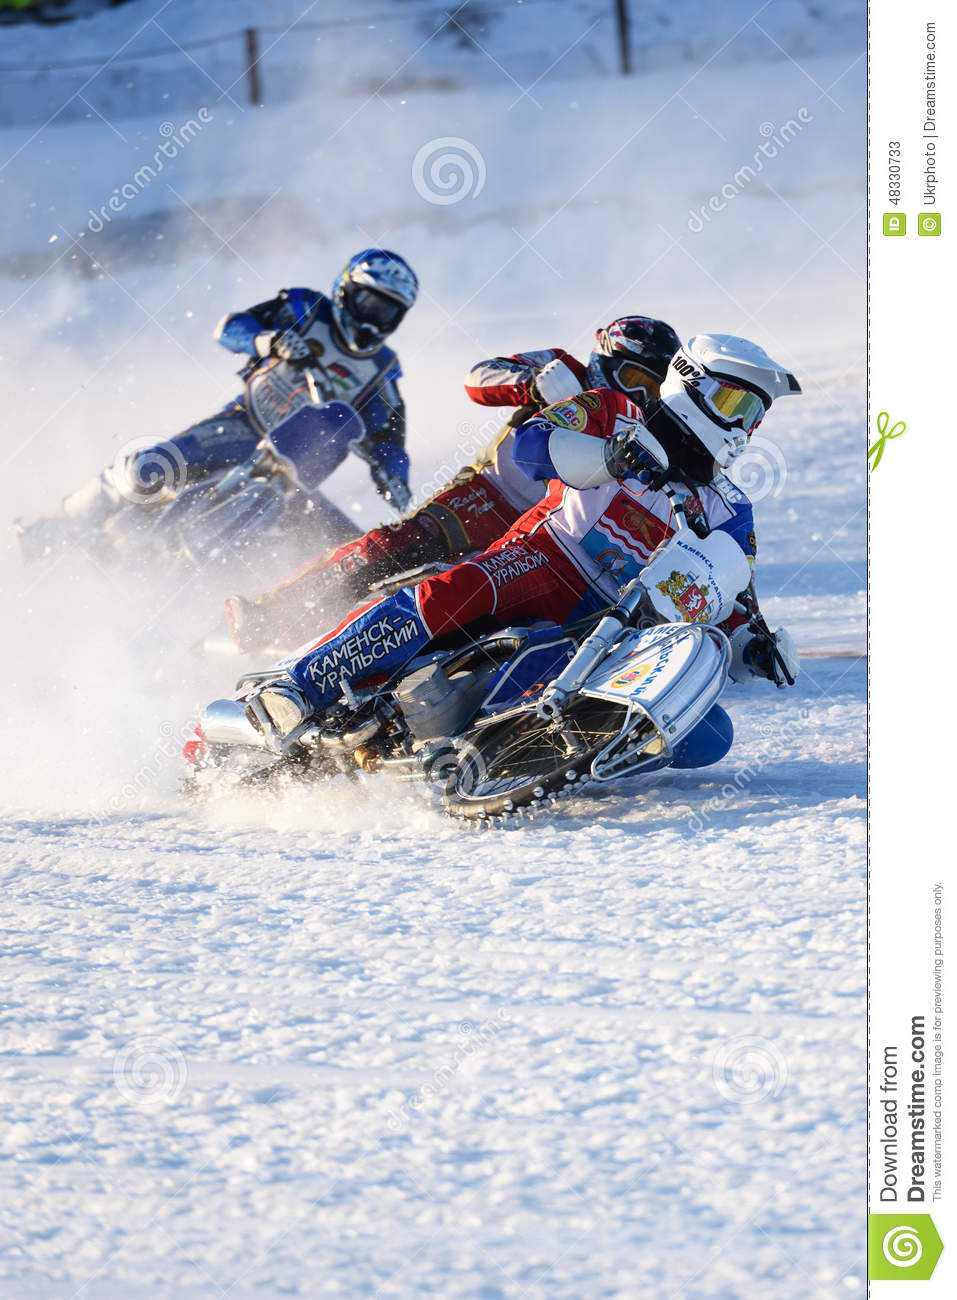 Russian ice speedway chionship. the sports returns to the sport